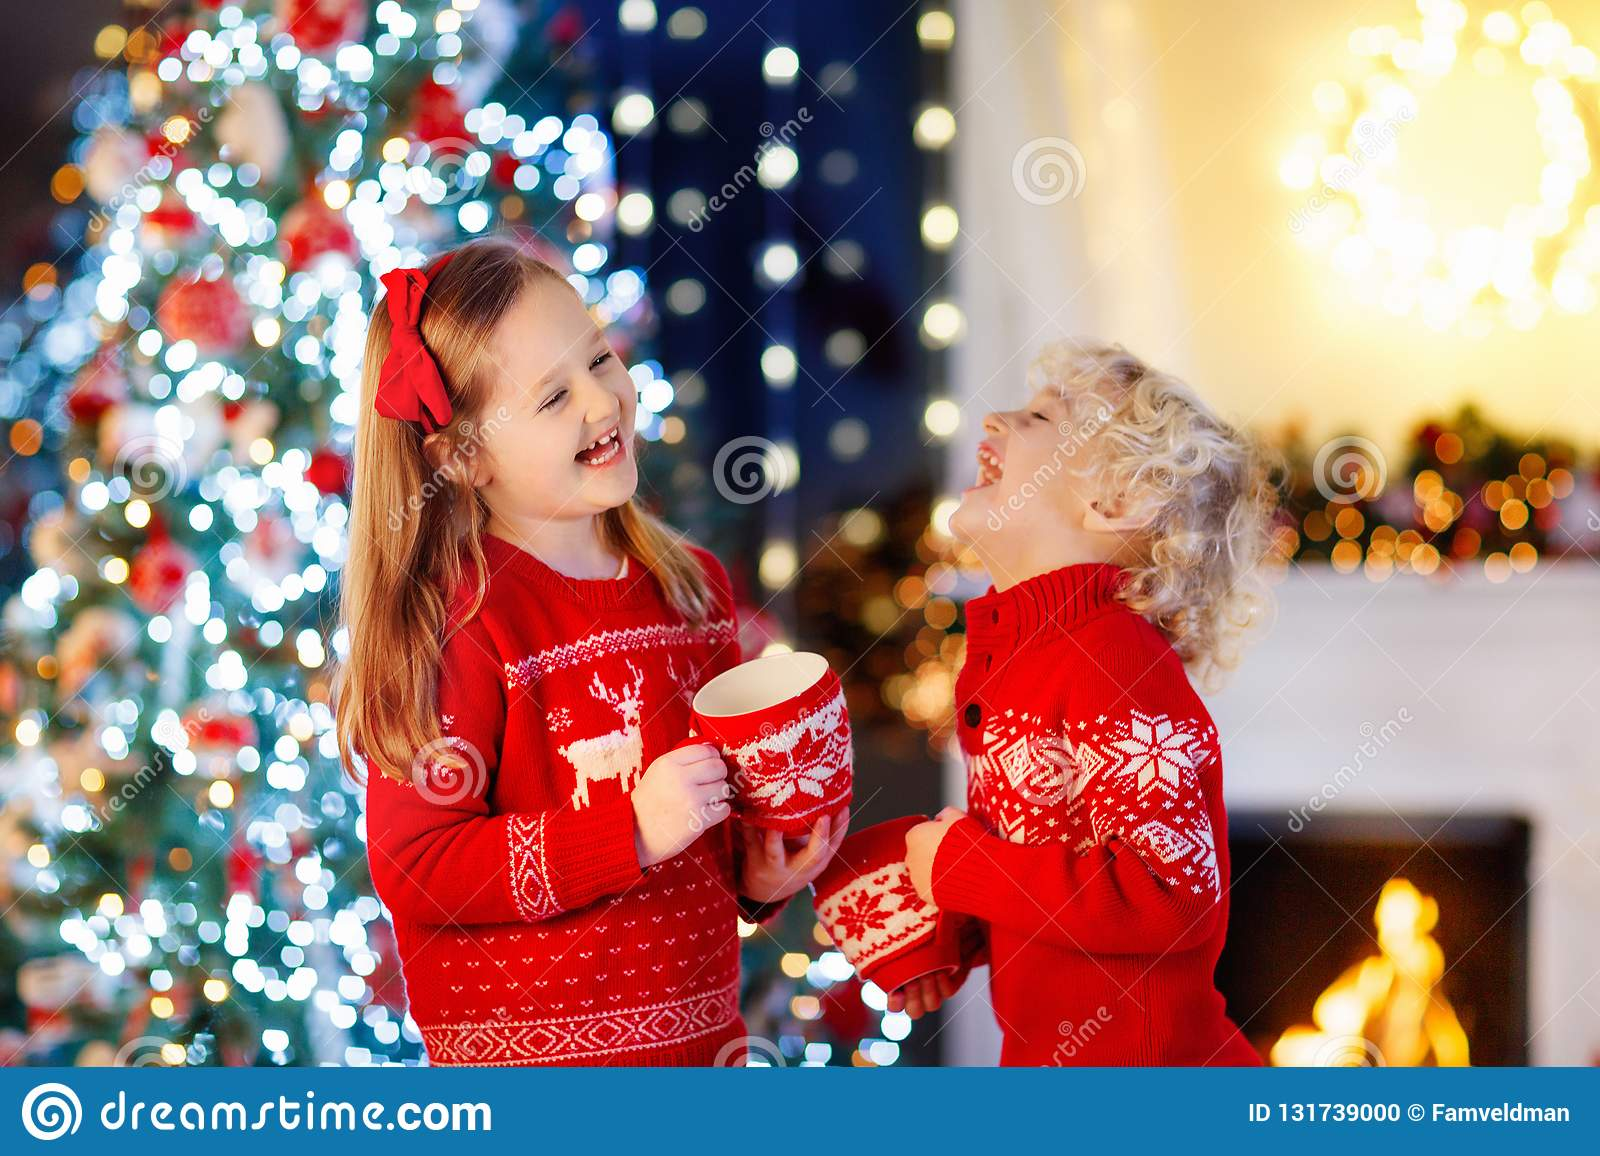 Child under Christmas tree at home. Little boy and girl in knitted sweater with Xmas ornament drink hot chocolate. Family with